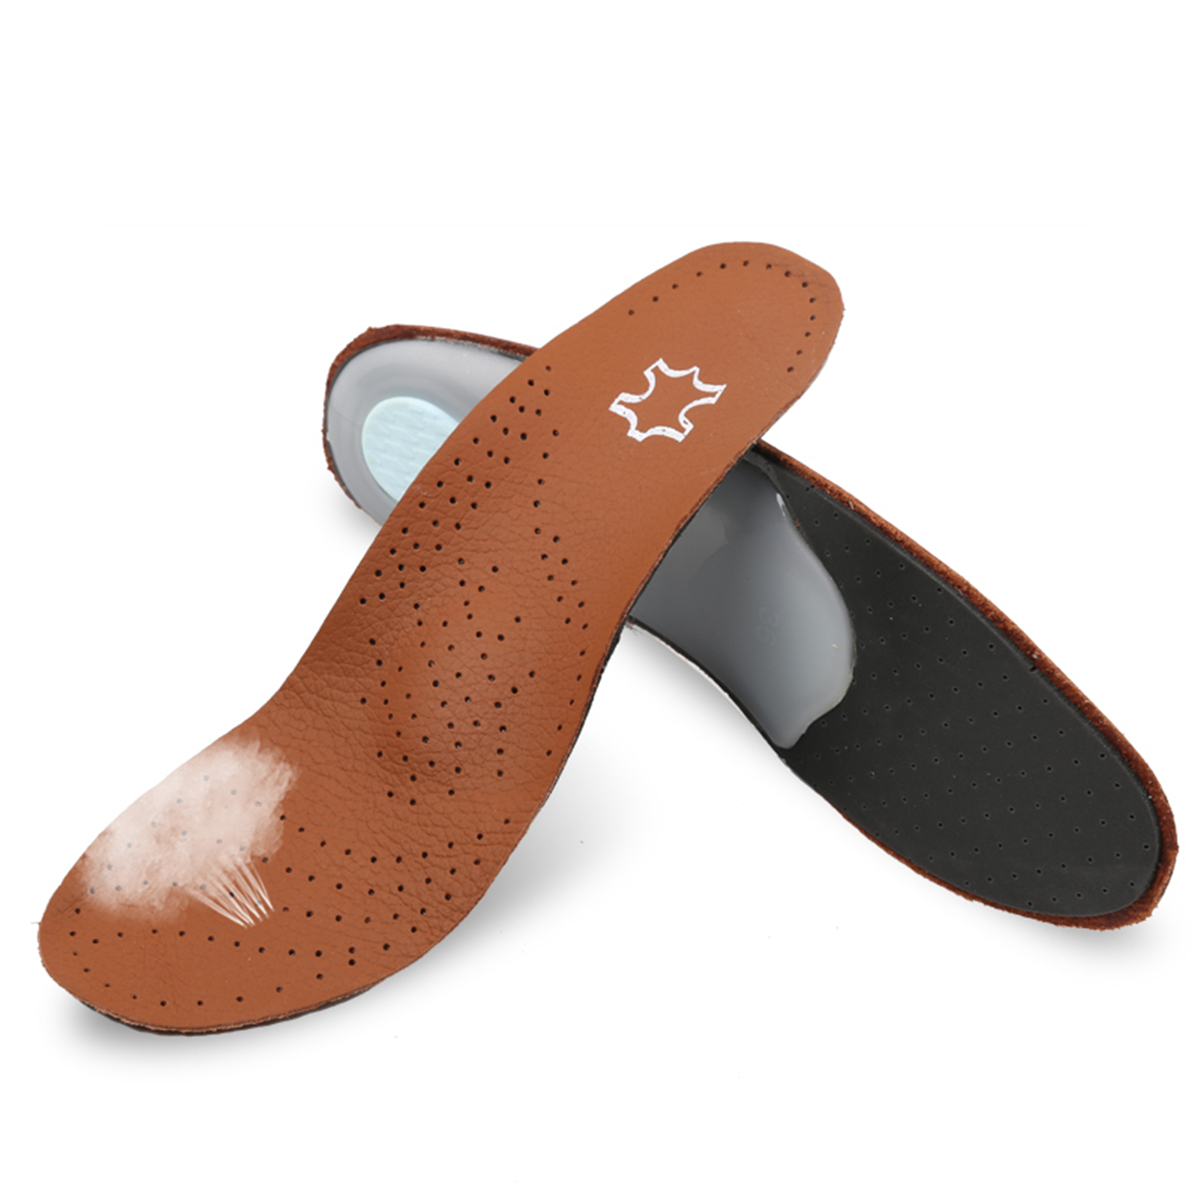 1pair length foot orthotic shoe insoles insert